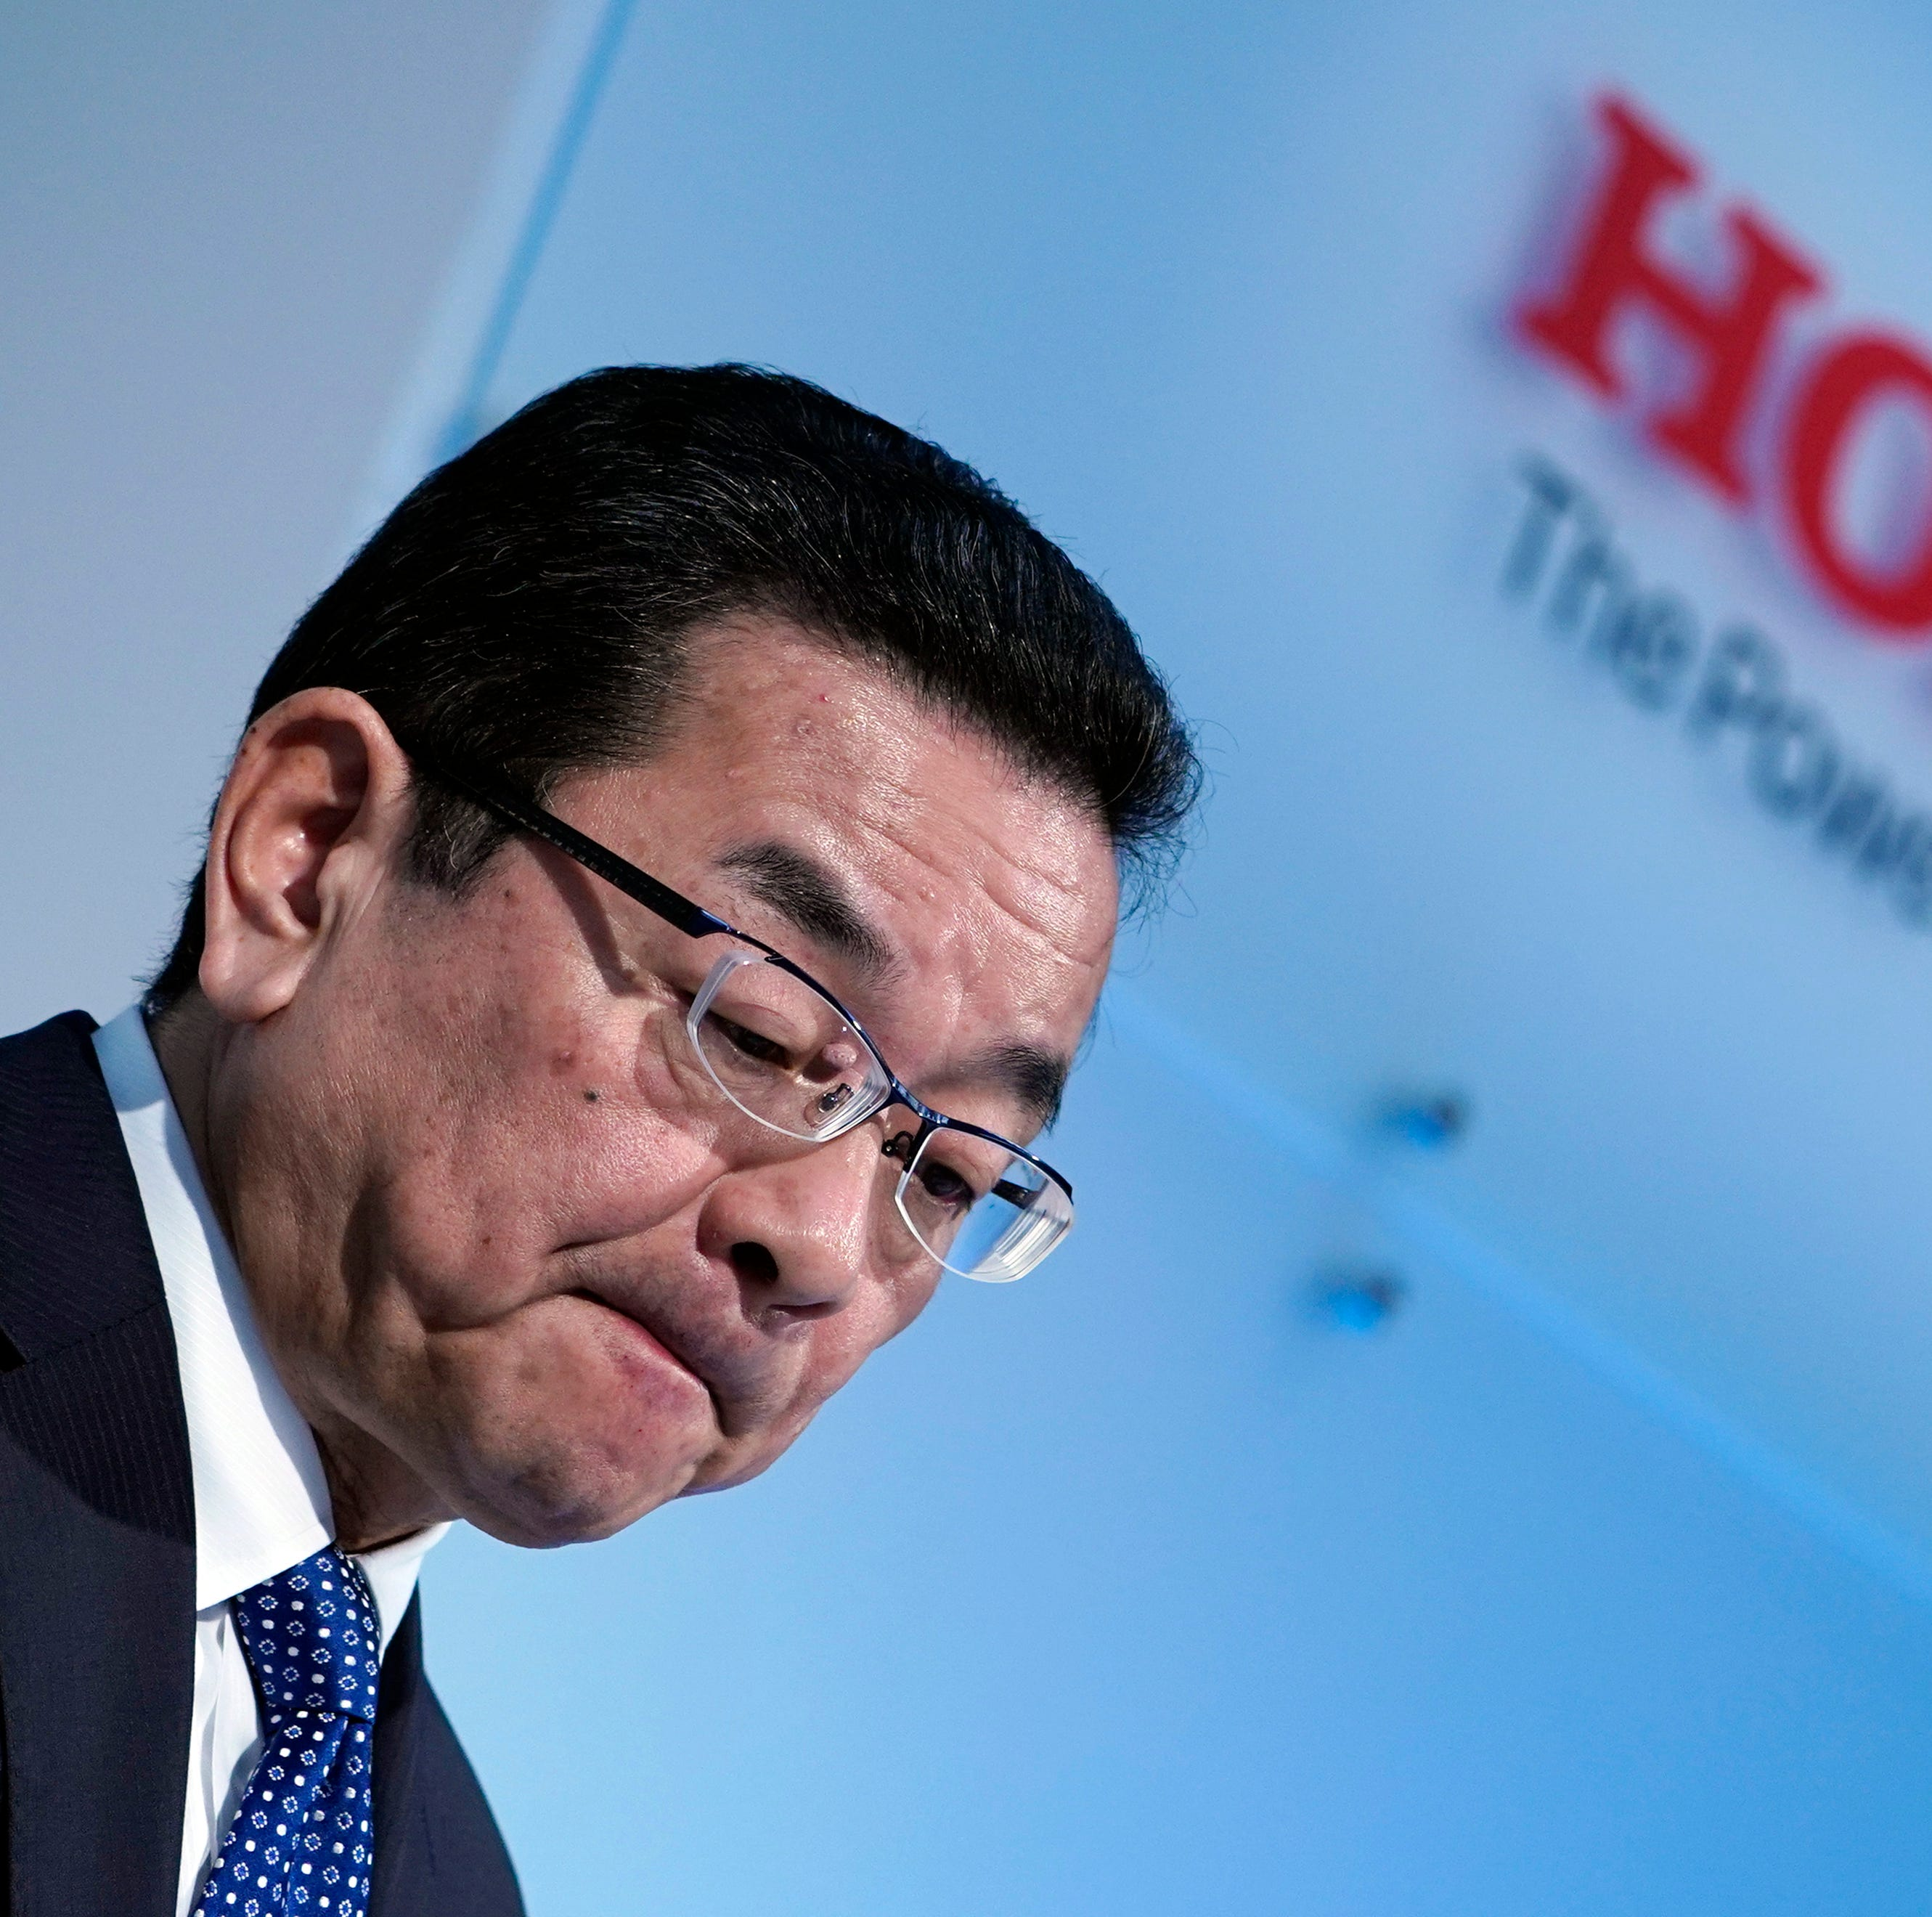 Honda Motors President and CEO Takahiro Hachigo reacts during a press conference at the carmaker headquarters in Tokyo, Japan, 19 February 2019. Hachigo announced the company's global automobile manufacturing restructure which includes the closing of its Swindon plant in Britain in 2021.